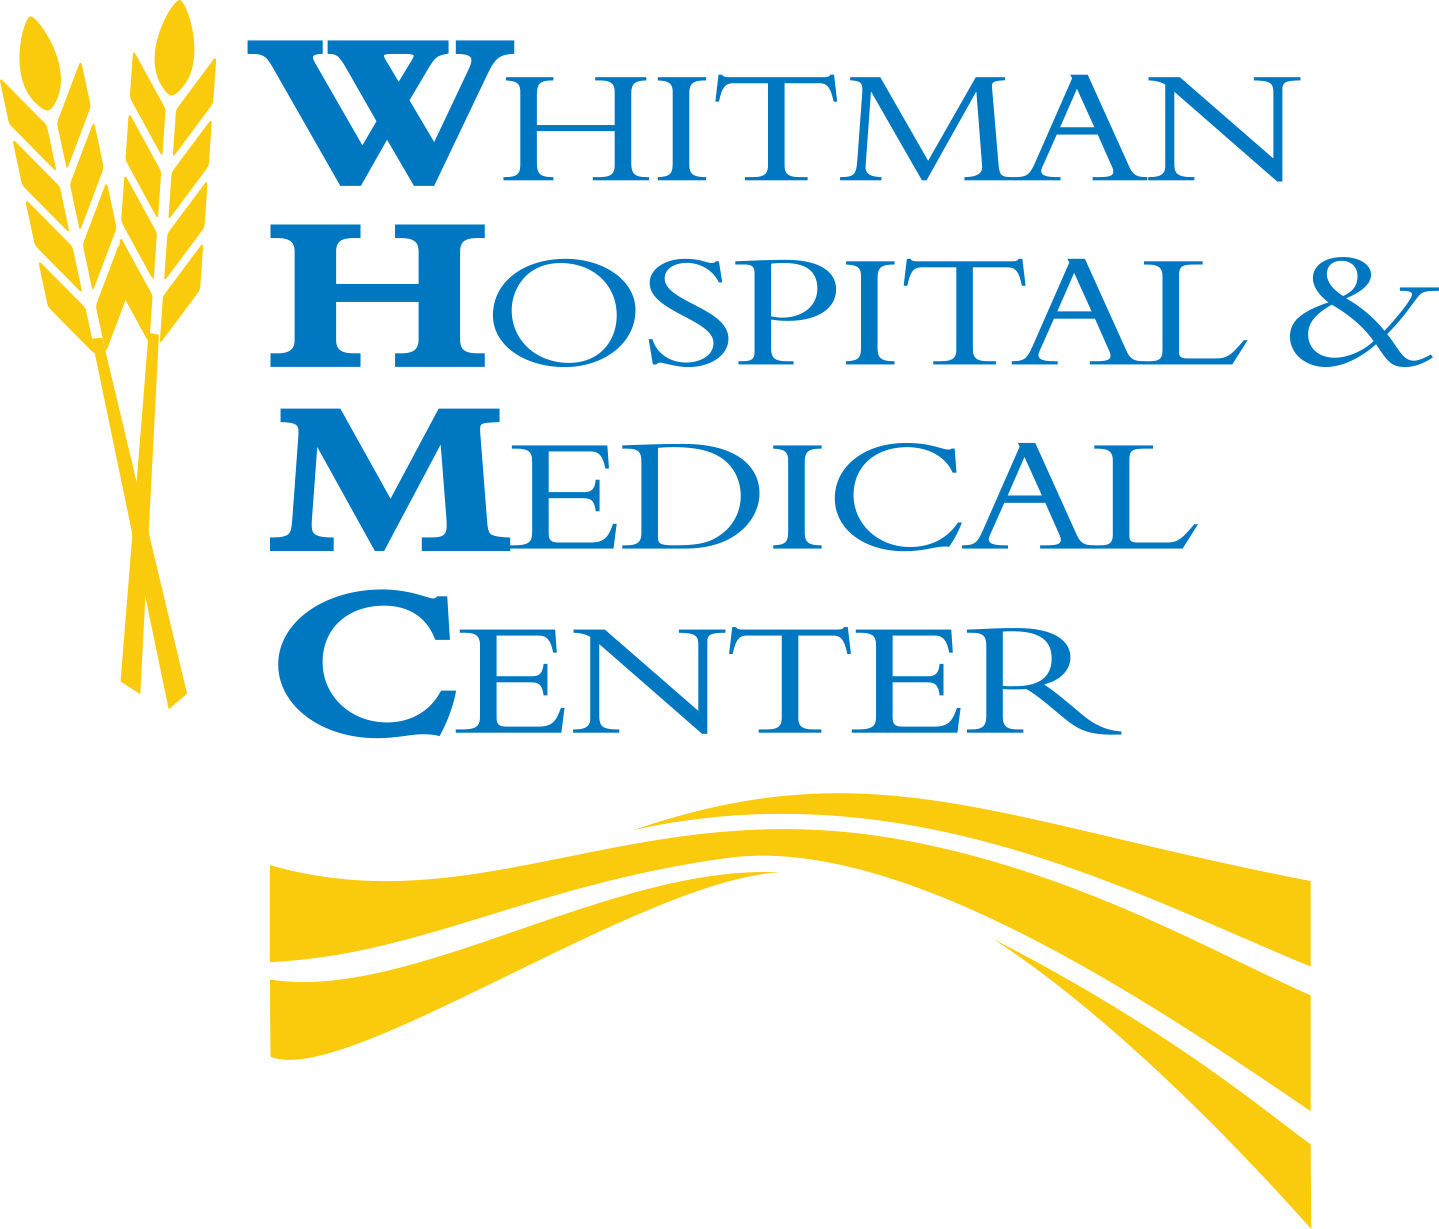 Whitman Hospital & Medical Center logo